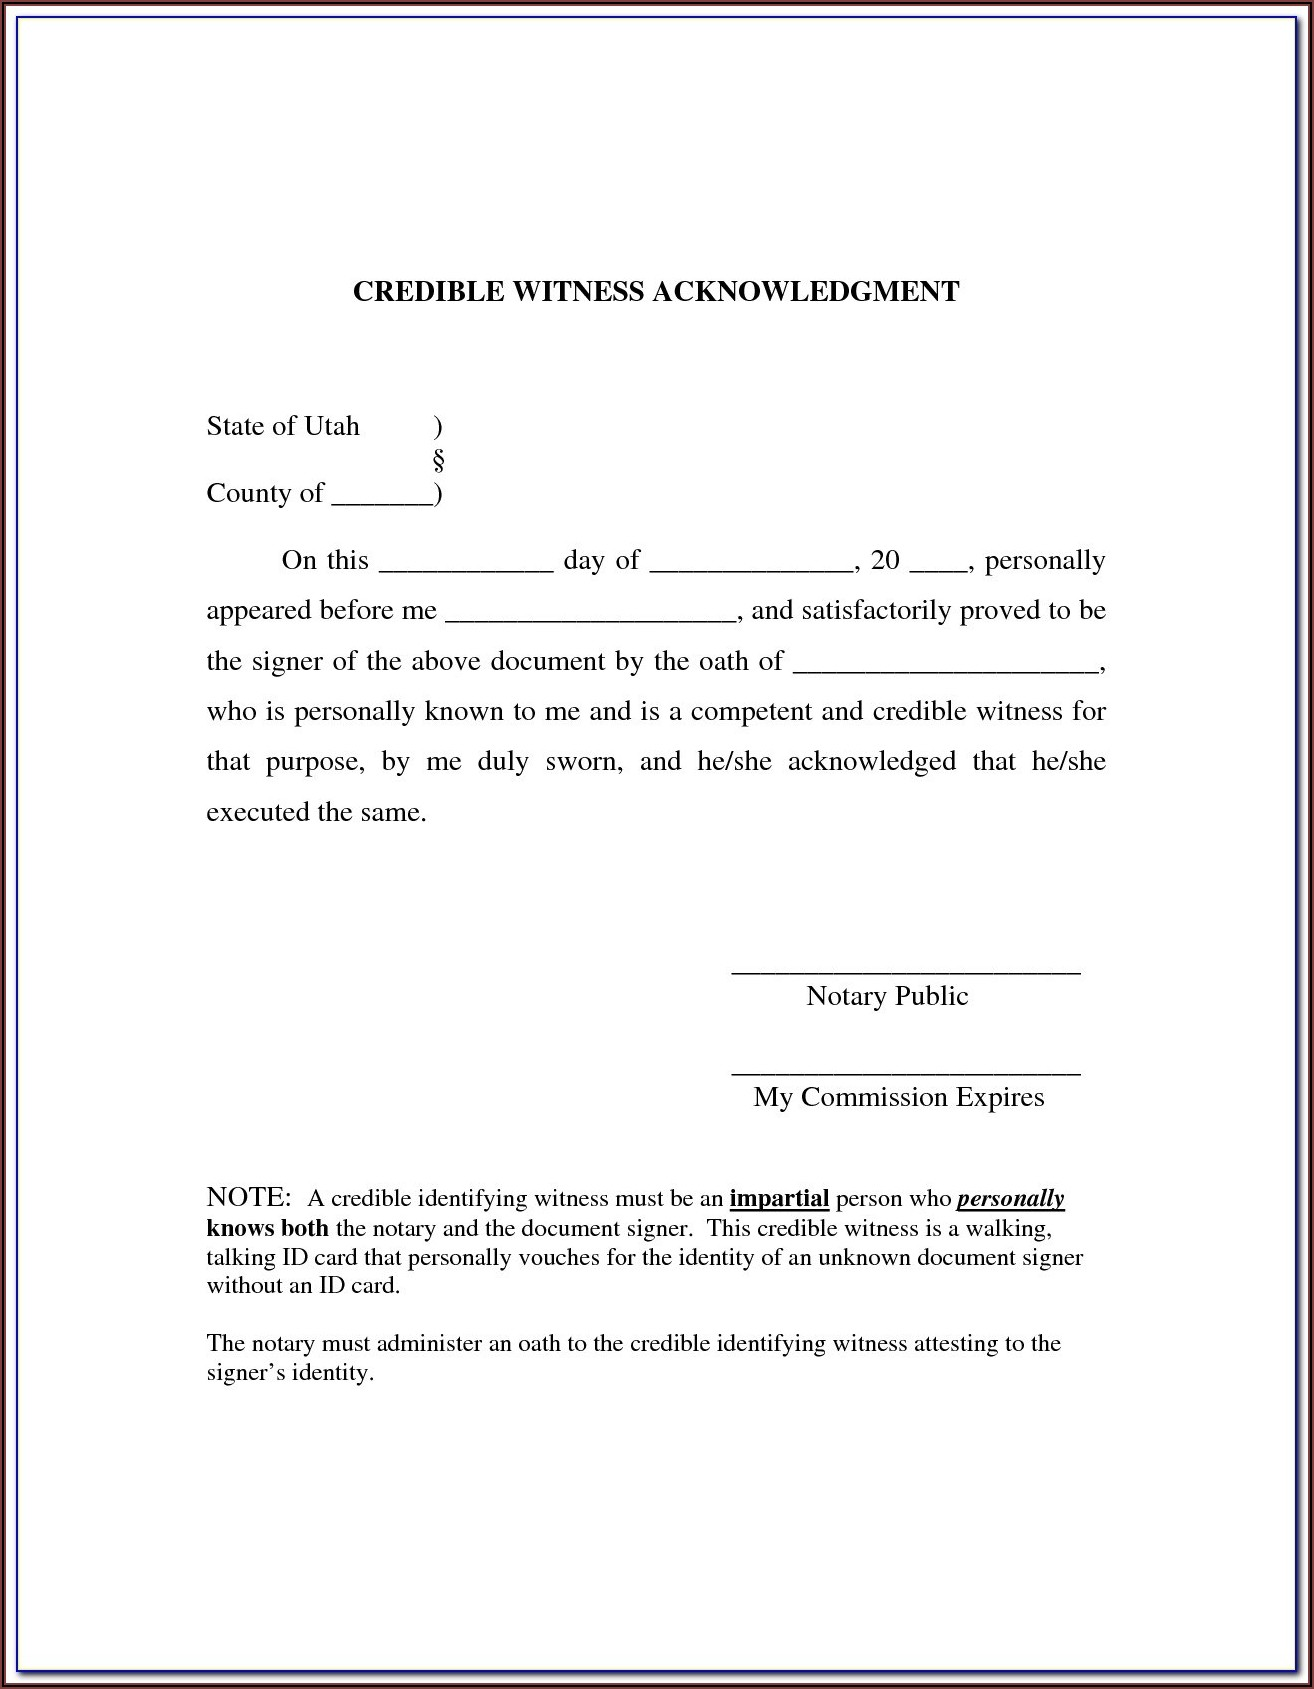 Texas Notary Acknowledgment